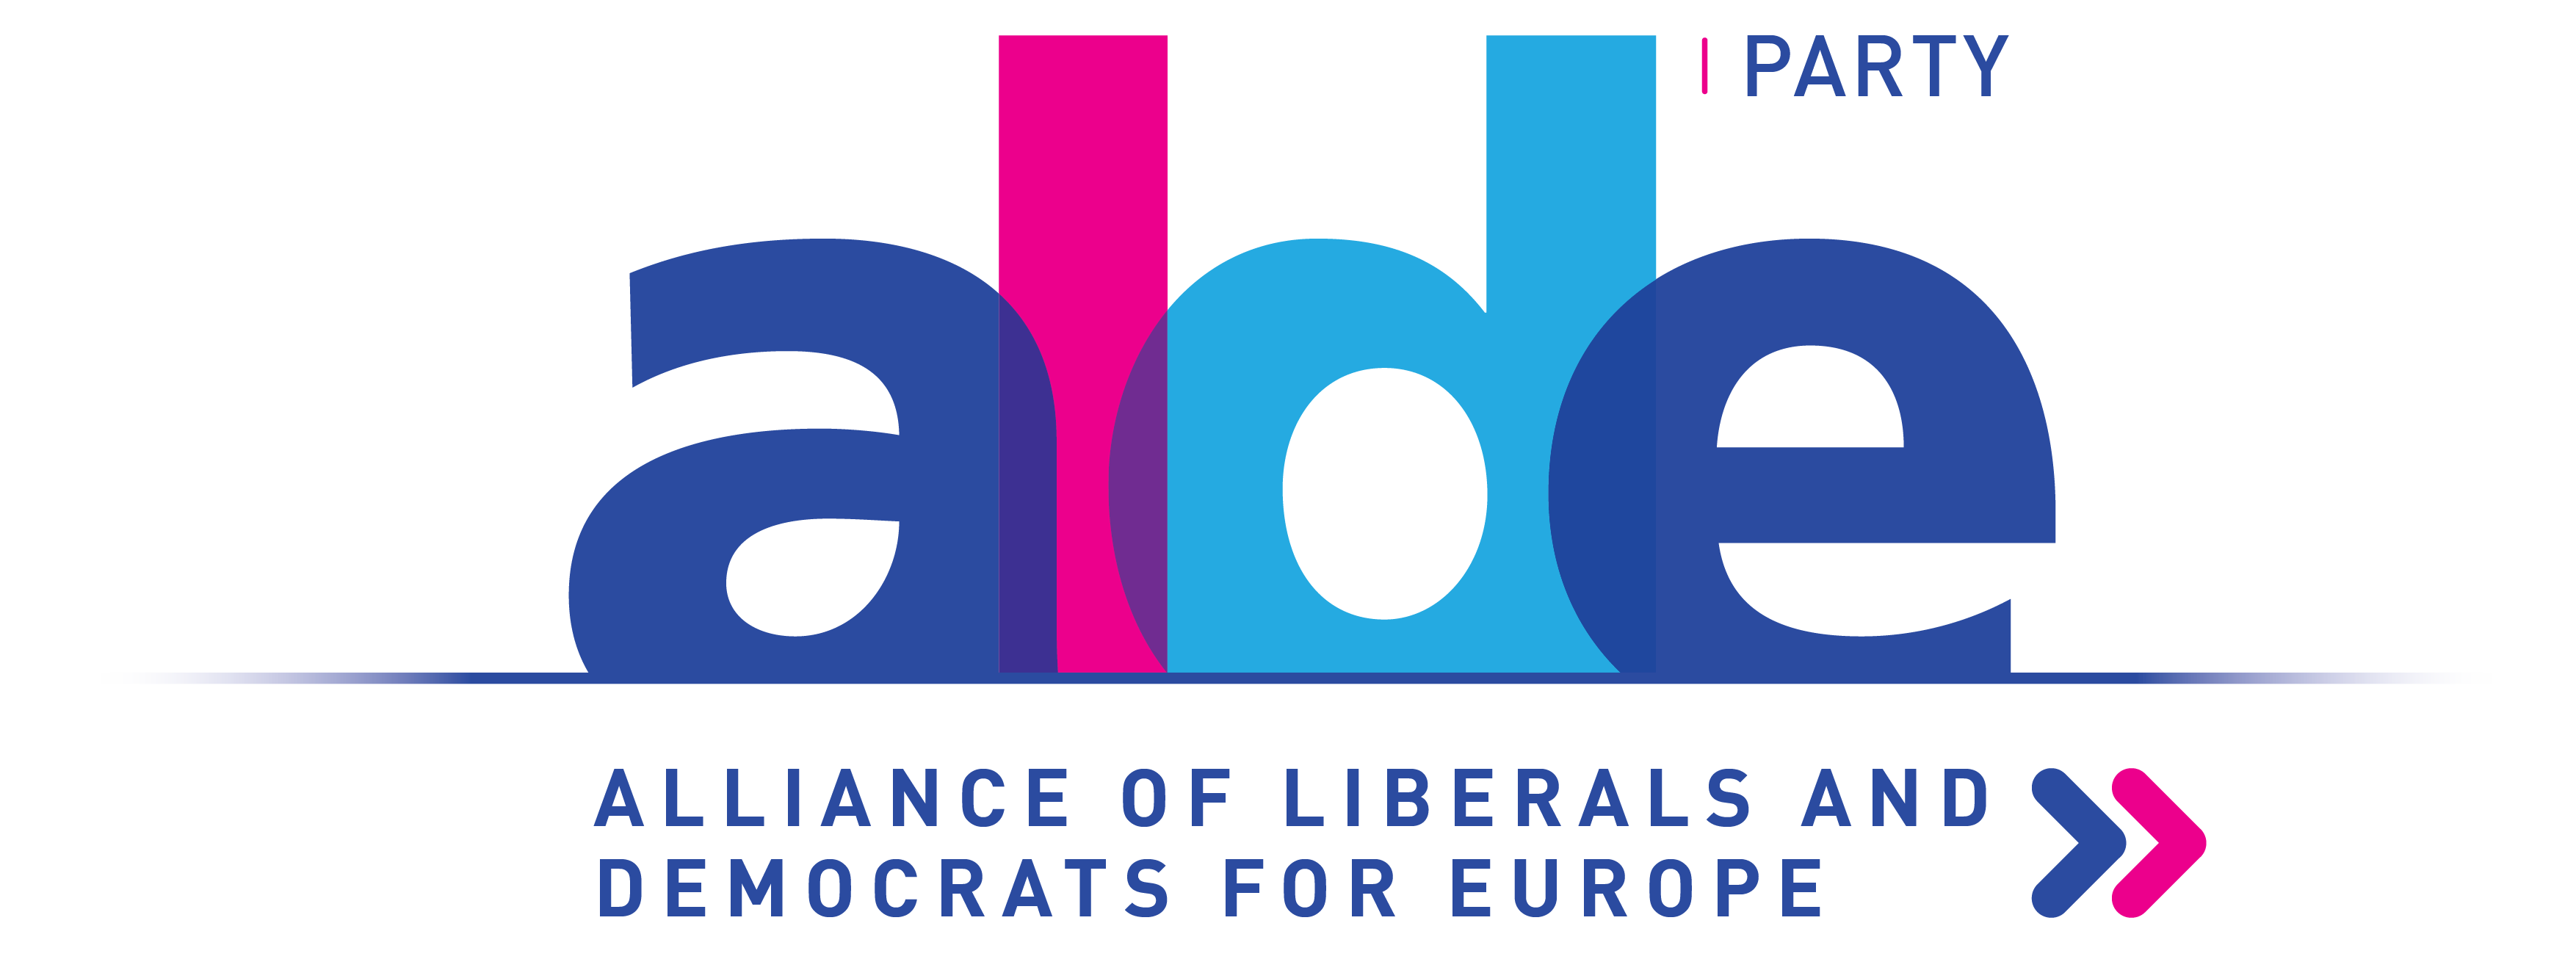 logo for Alliance of Liberals and Democrats for Europe Party